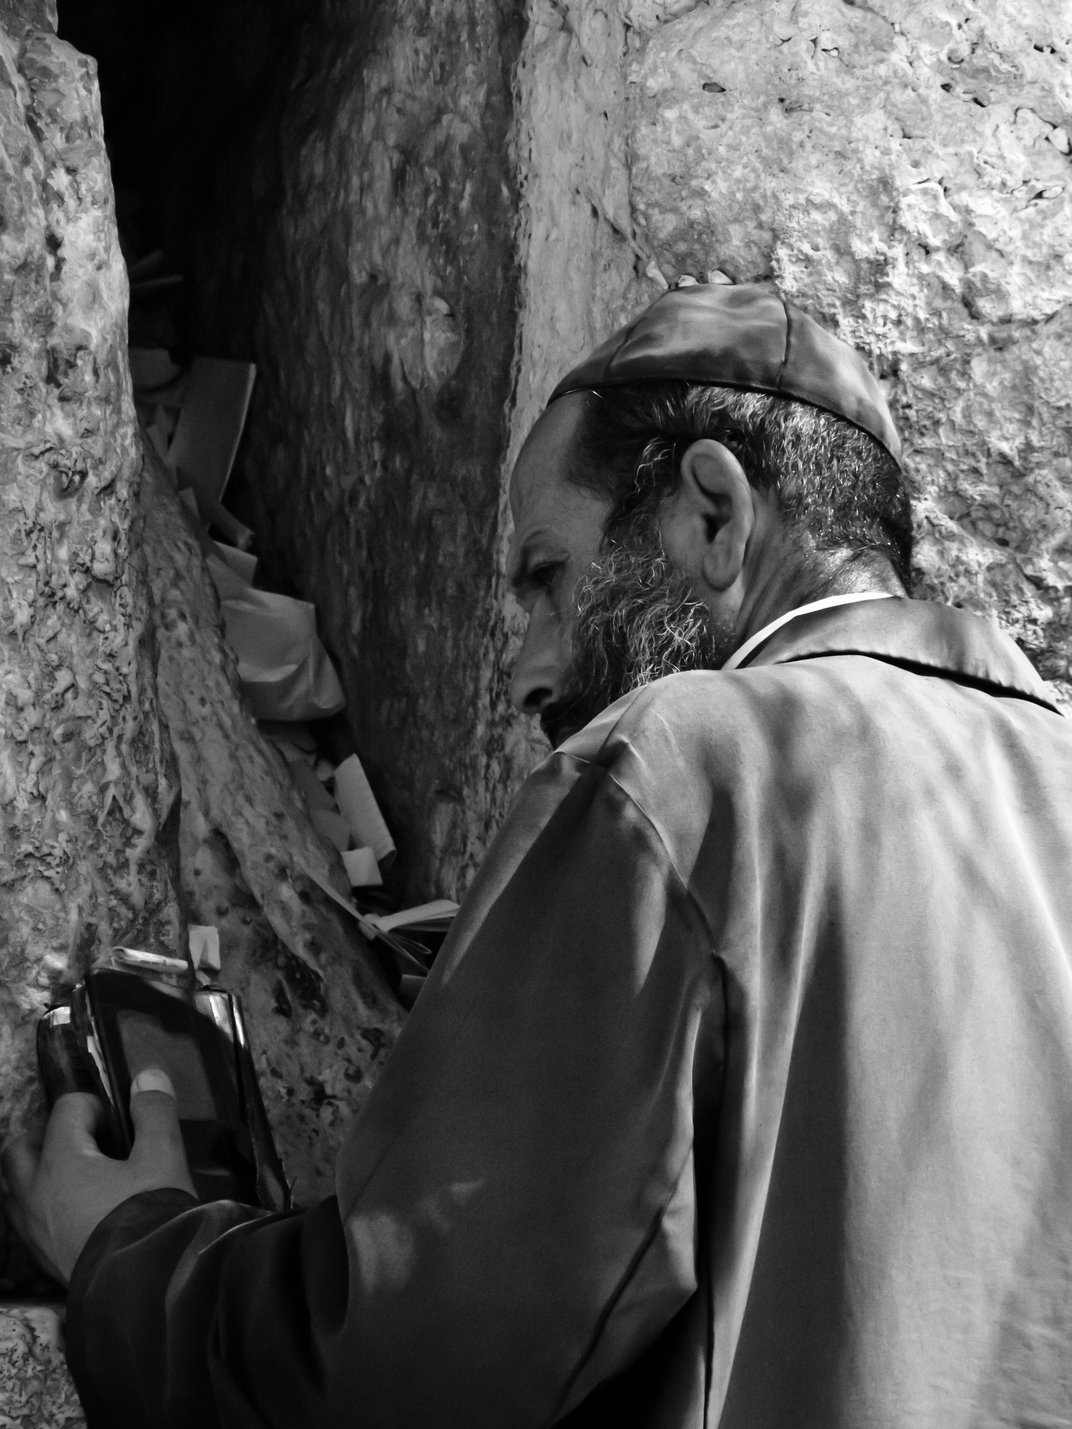 Religious Man Preparing For Prayer At The Western Wall In